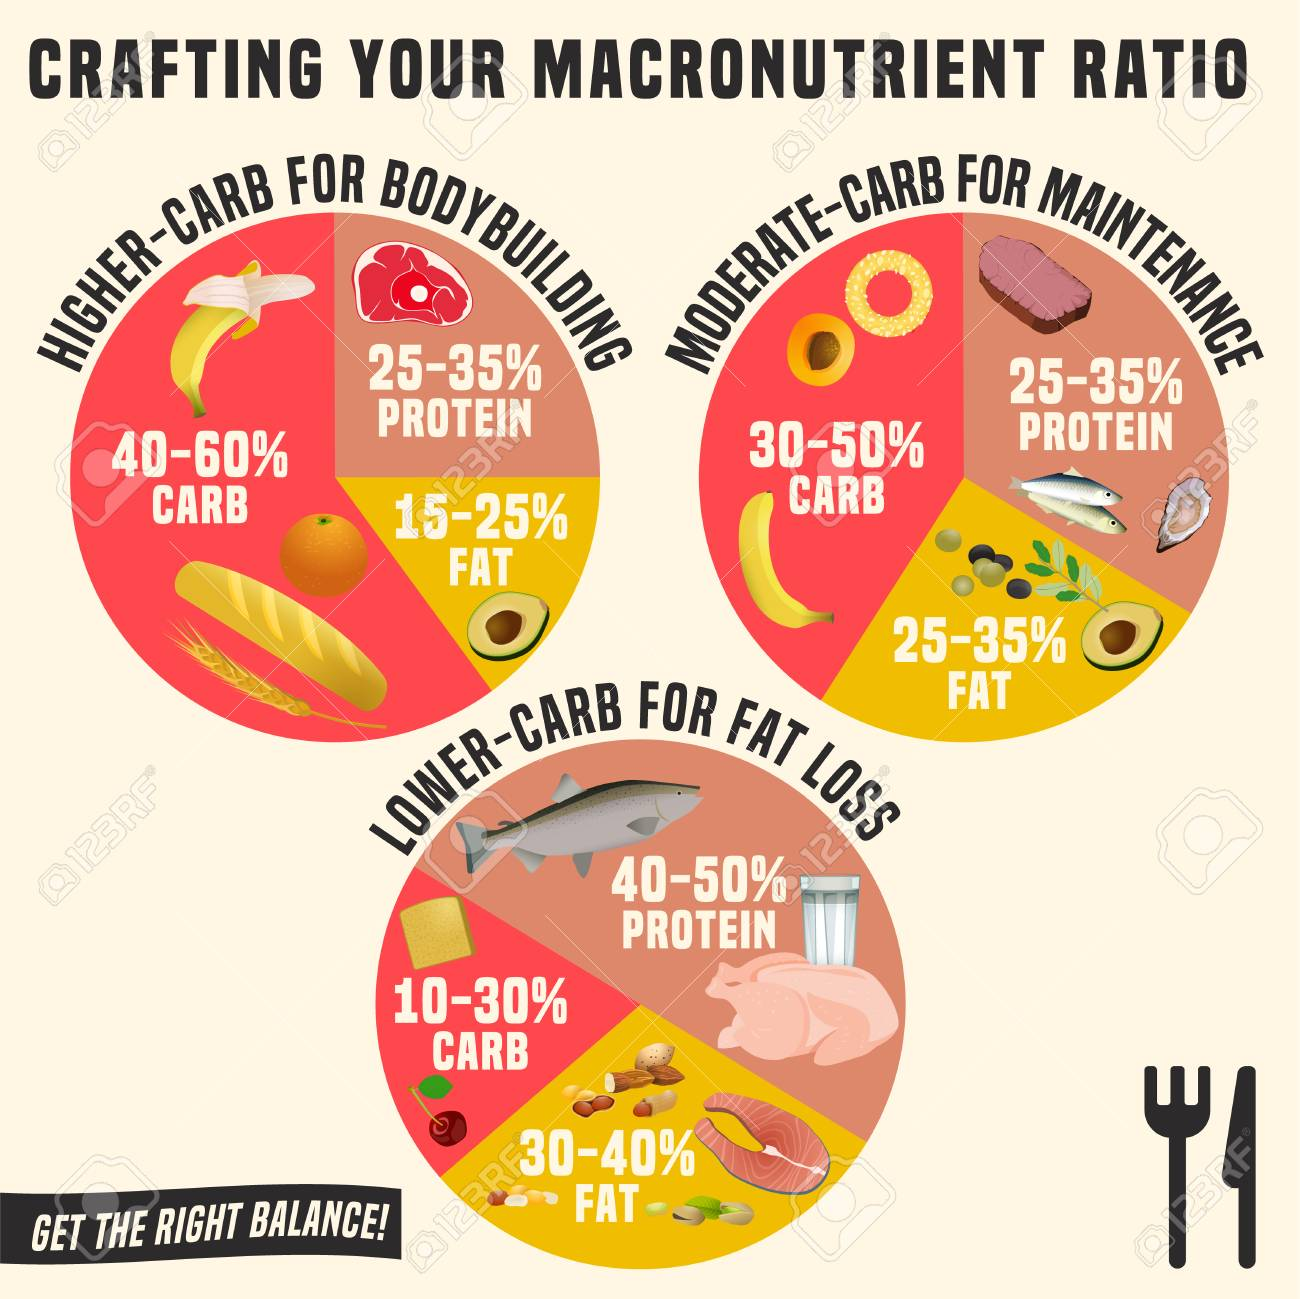 Crafting Your Macronutrient Ratio Fat Loss Bodybuilding And